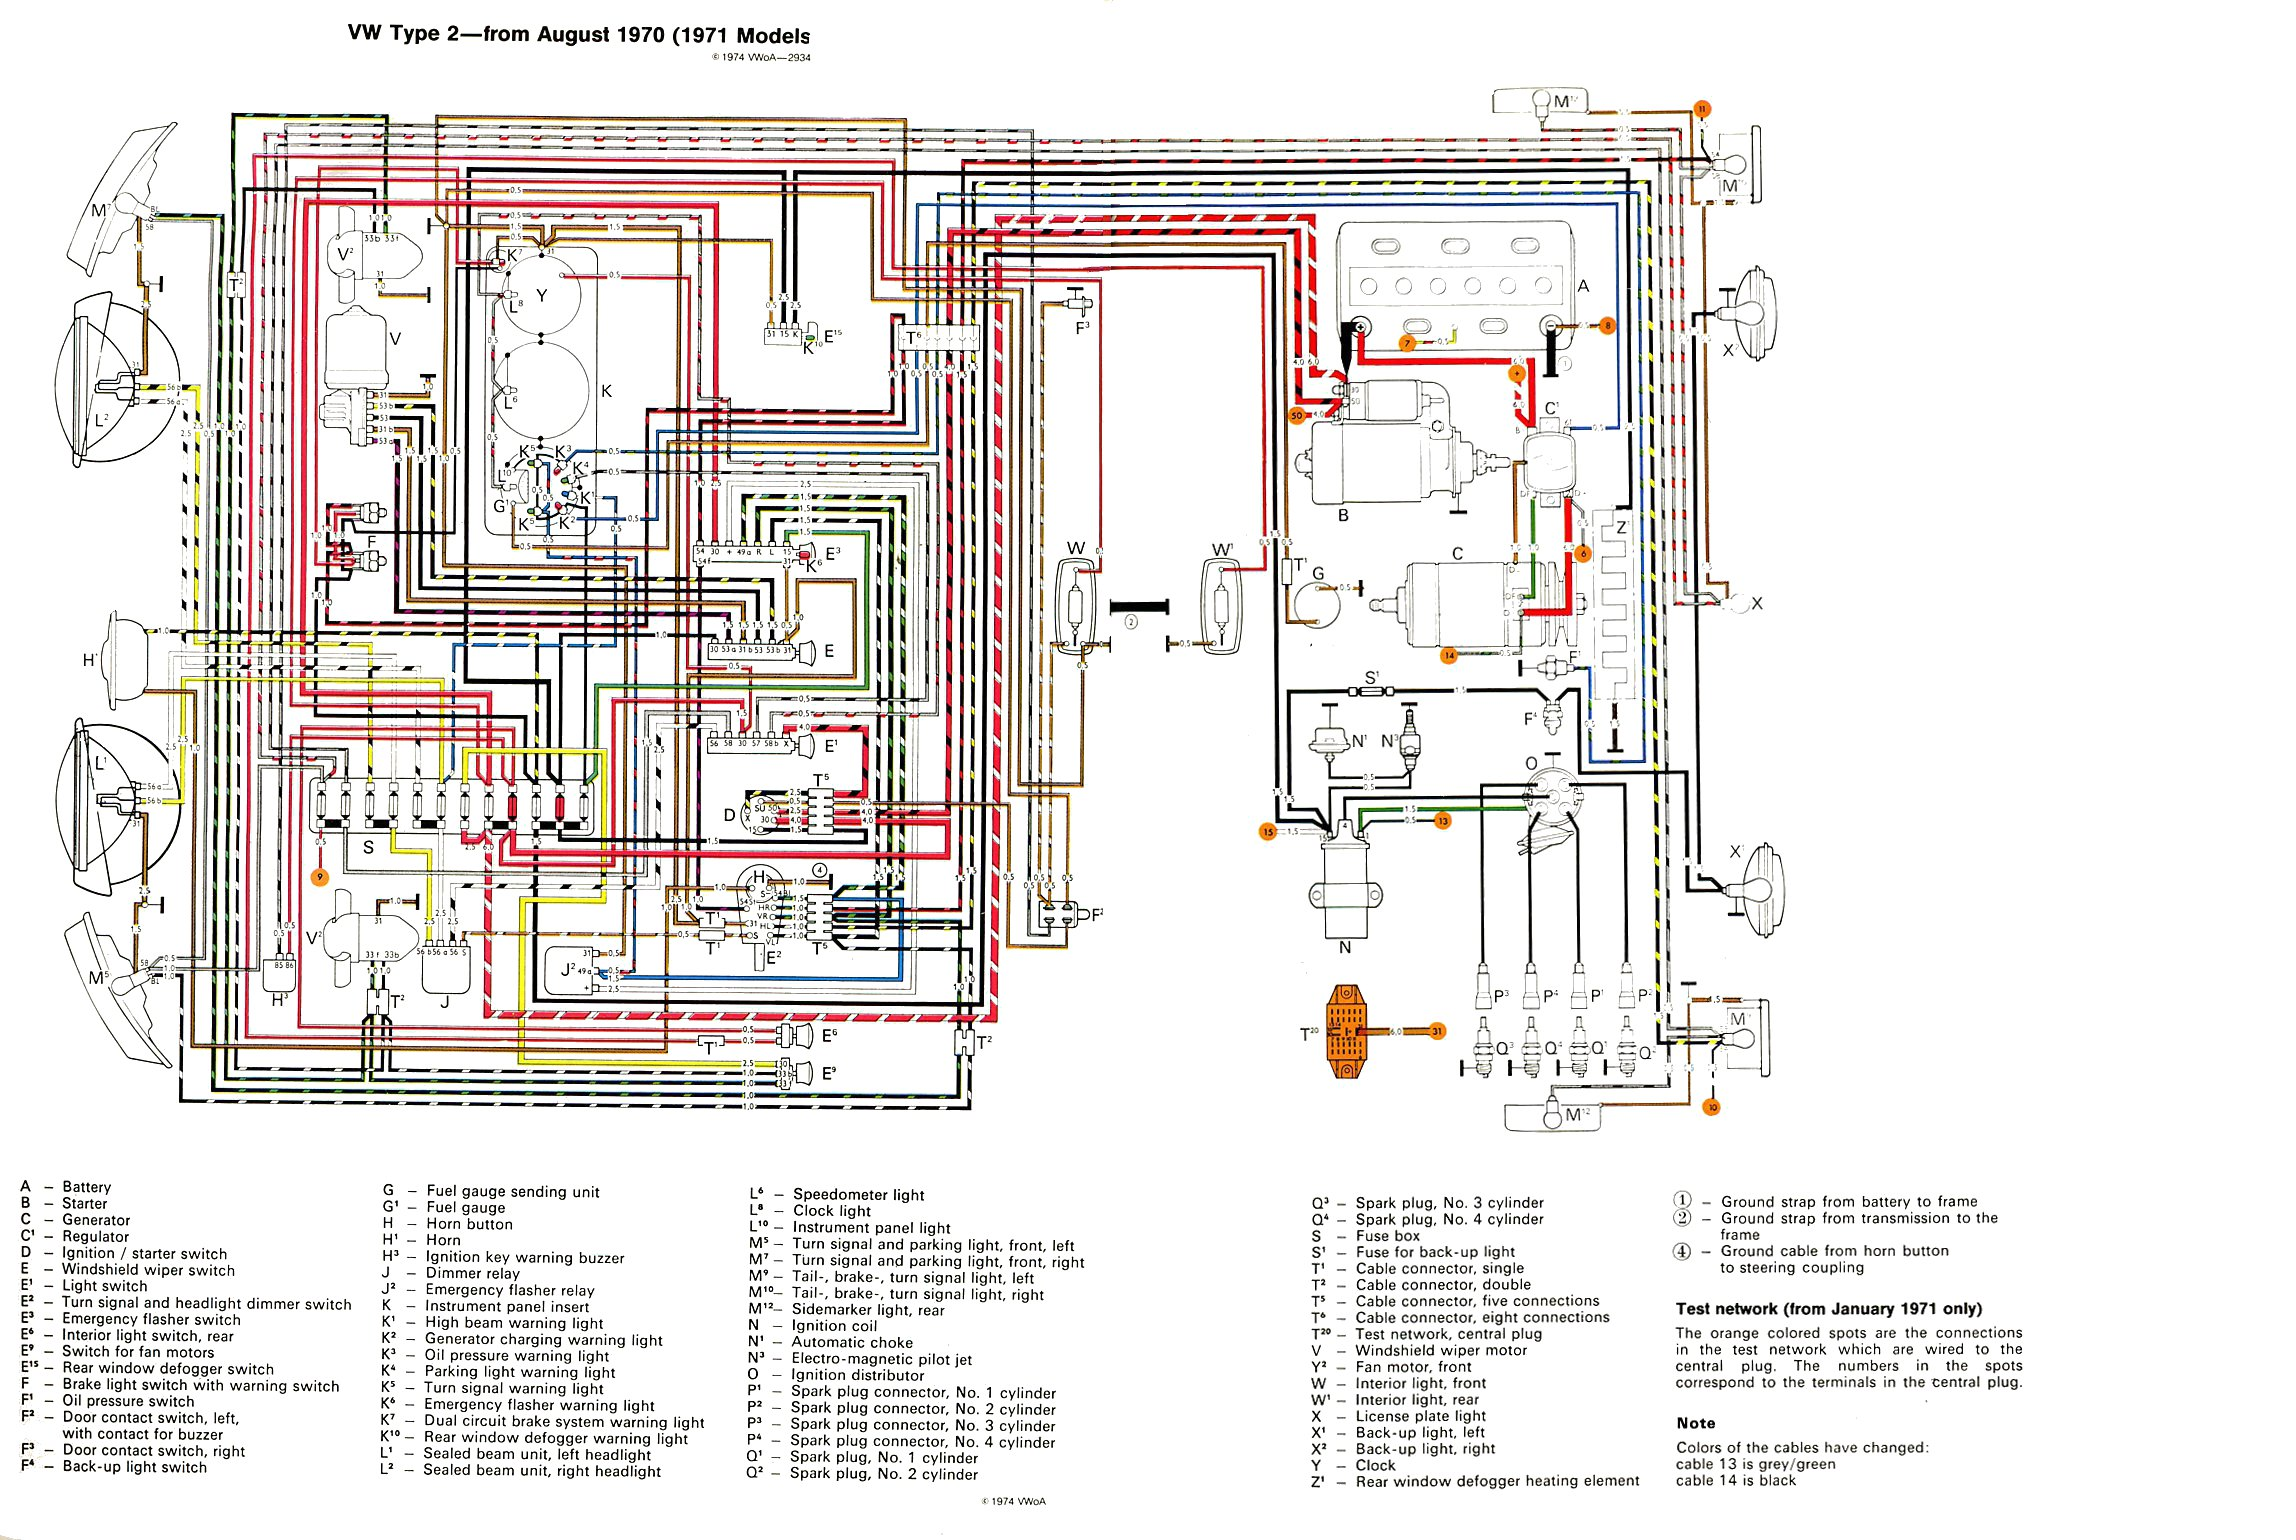 Wiring Diagram Left Door 2007 Chevy Impala House Diagrams Symbols 1969 Pdf Schematic U2022 Rh Detox Design Co 1963 2002